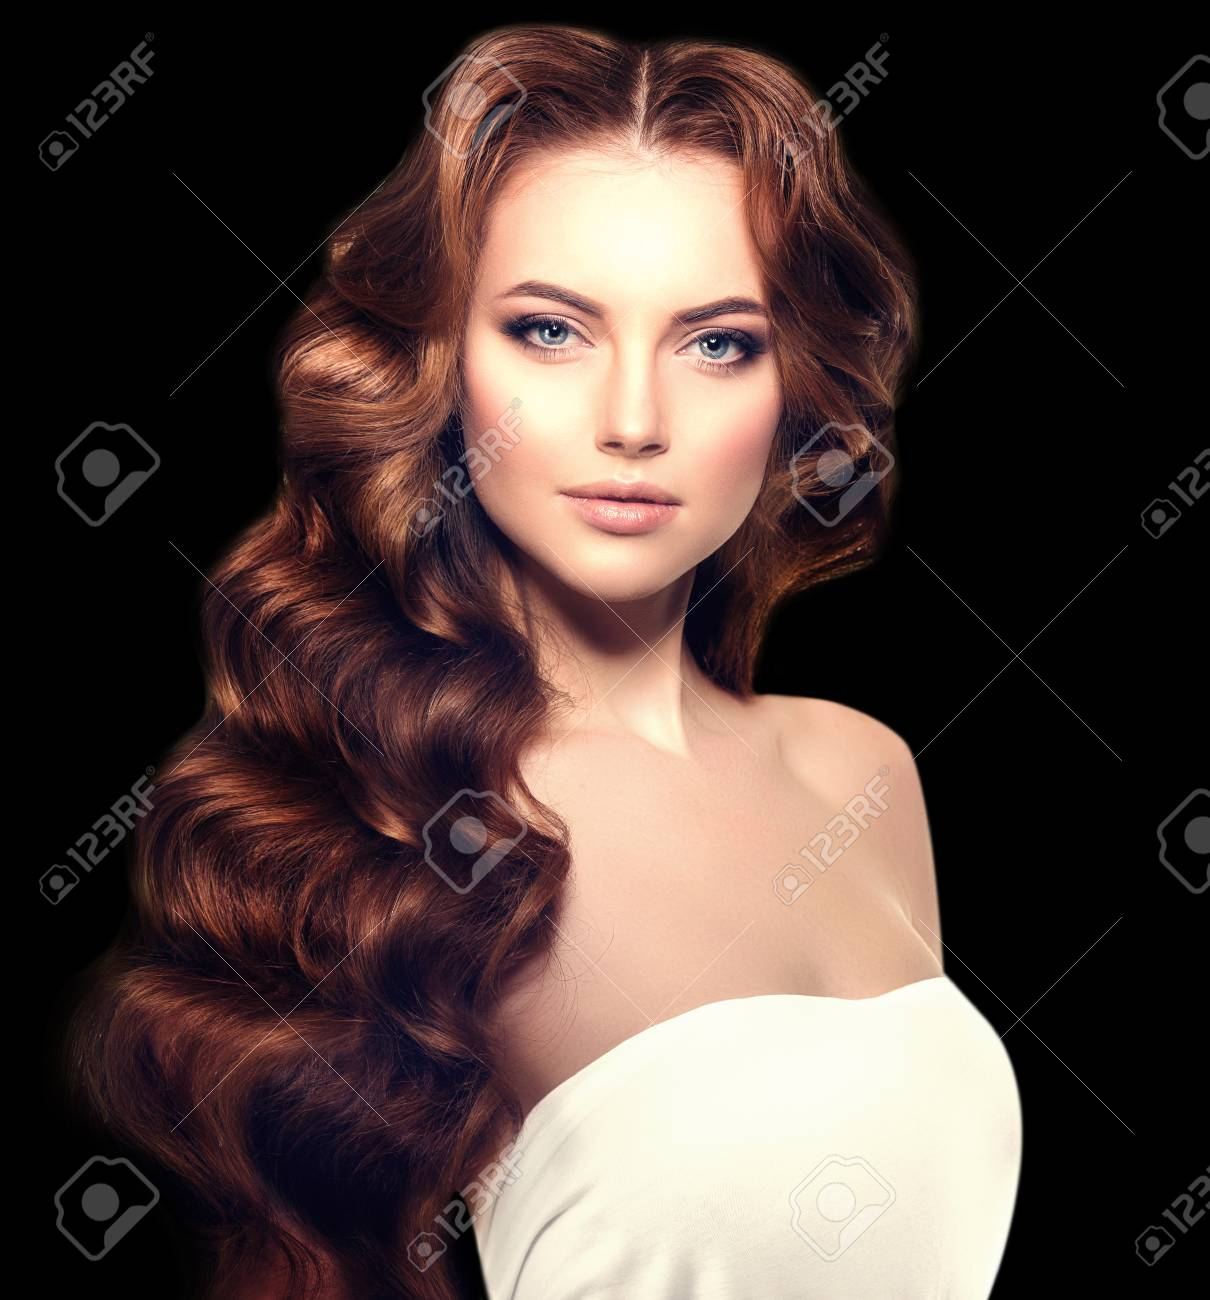 Long Hair On A Black Background Waves Curls Hairstyle Hair